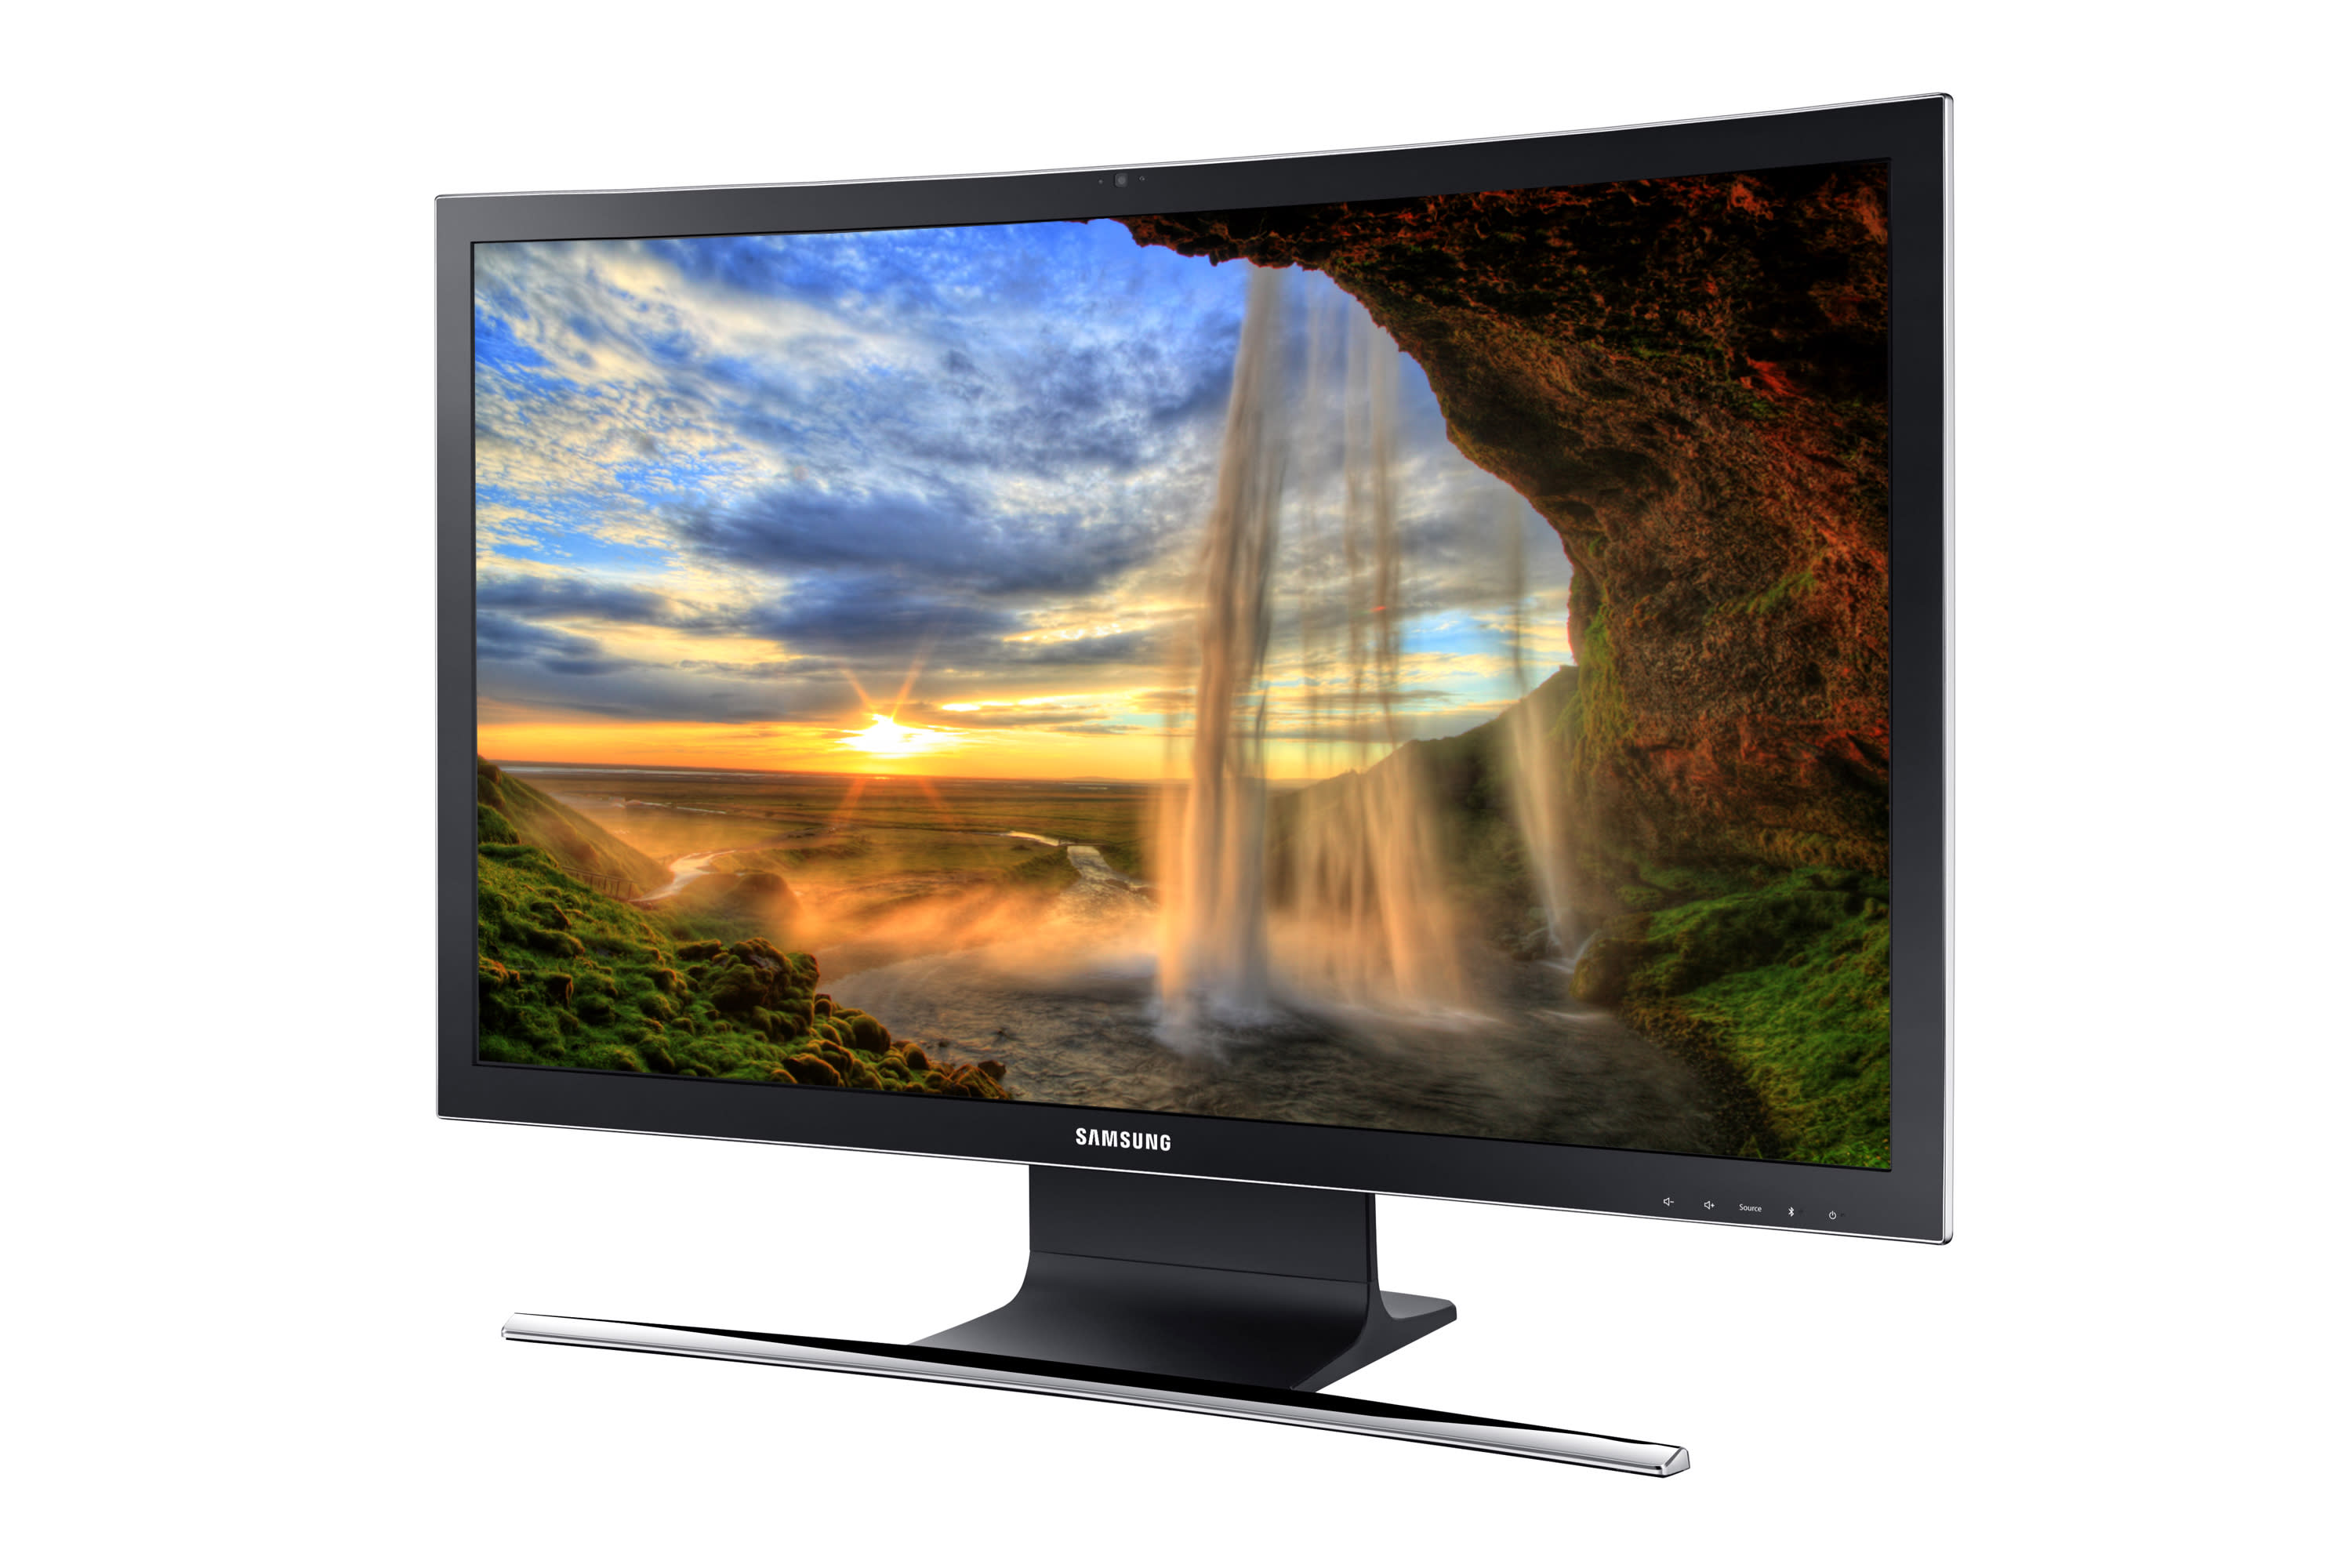 Samsung Ativ One 7 Curved All-in-one Available March 8